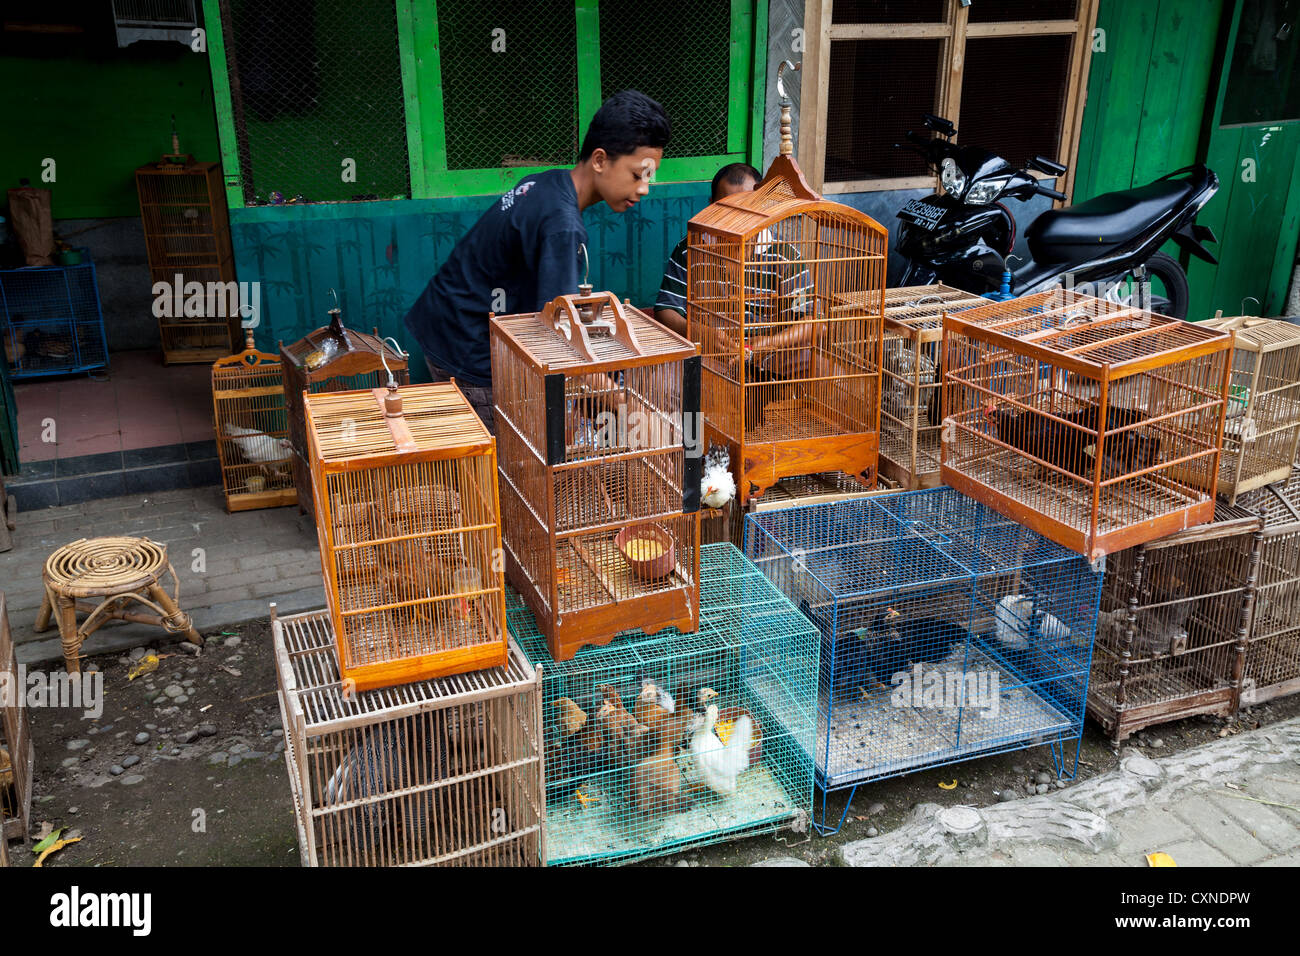 Bird Cages on the Bird Market in Indonesia - Stock Image